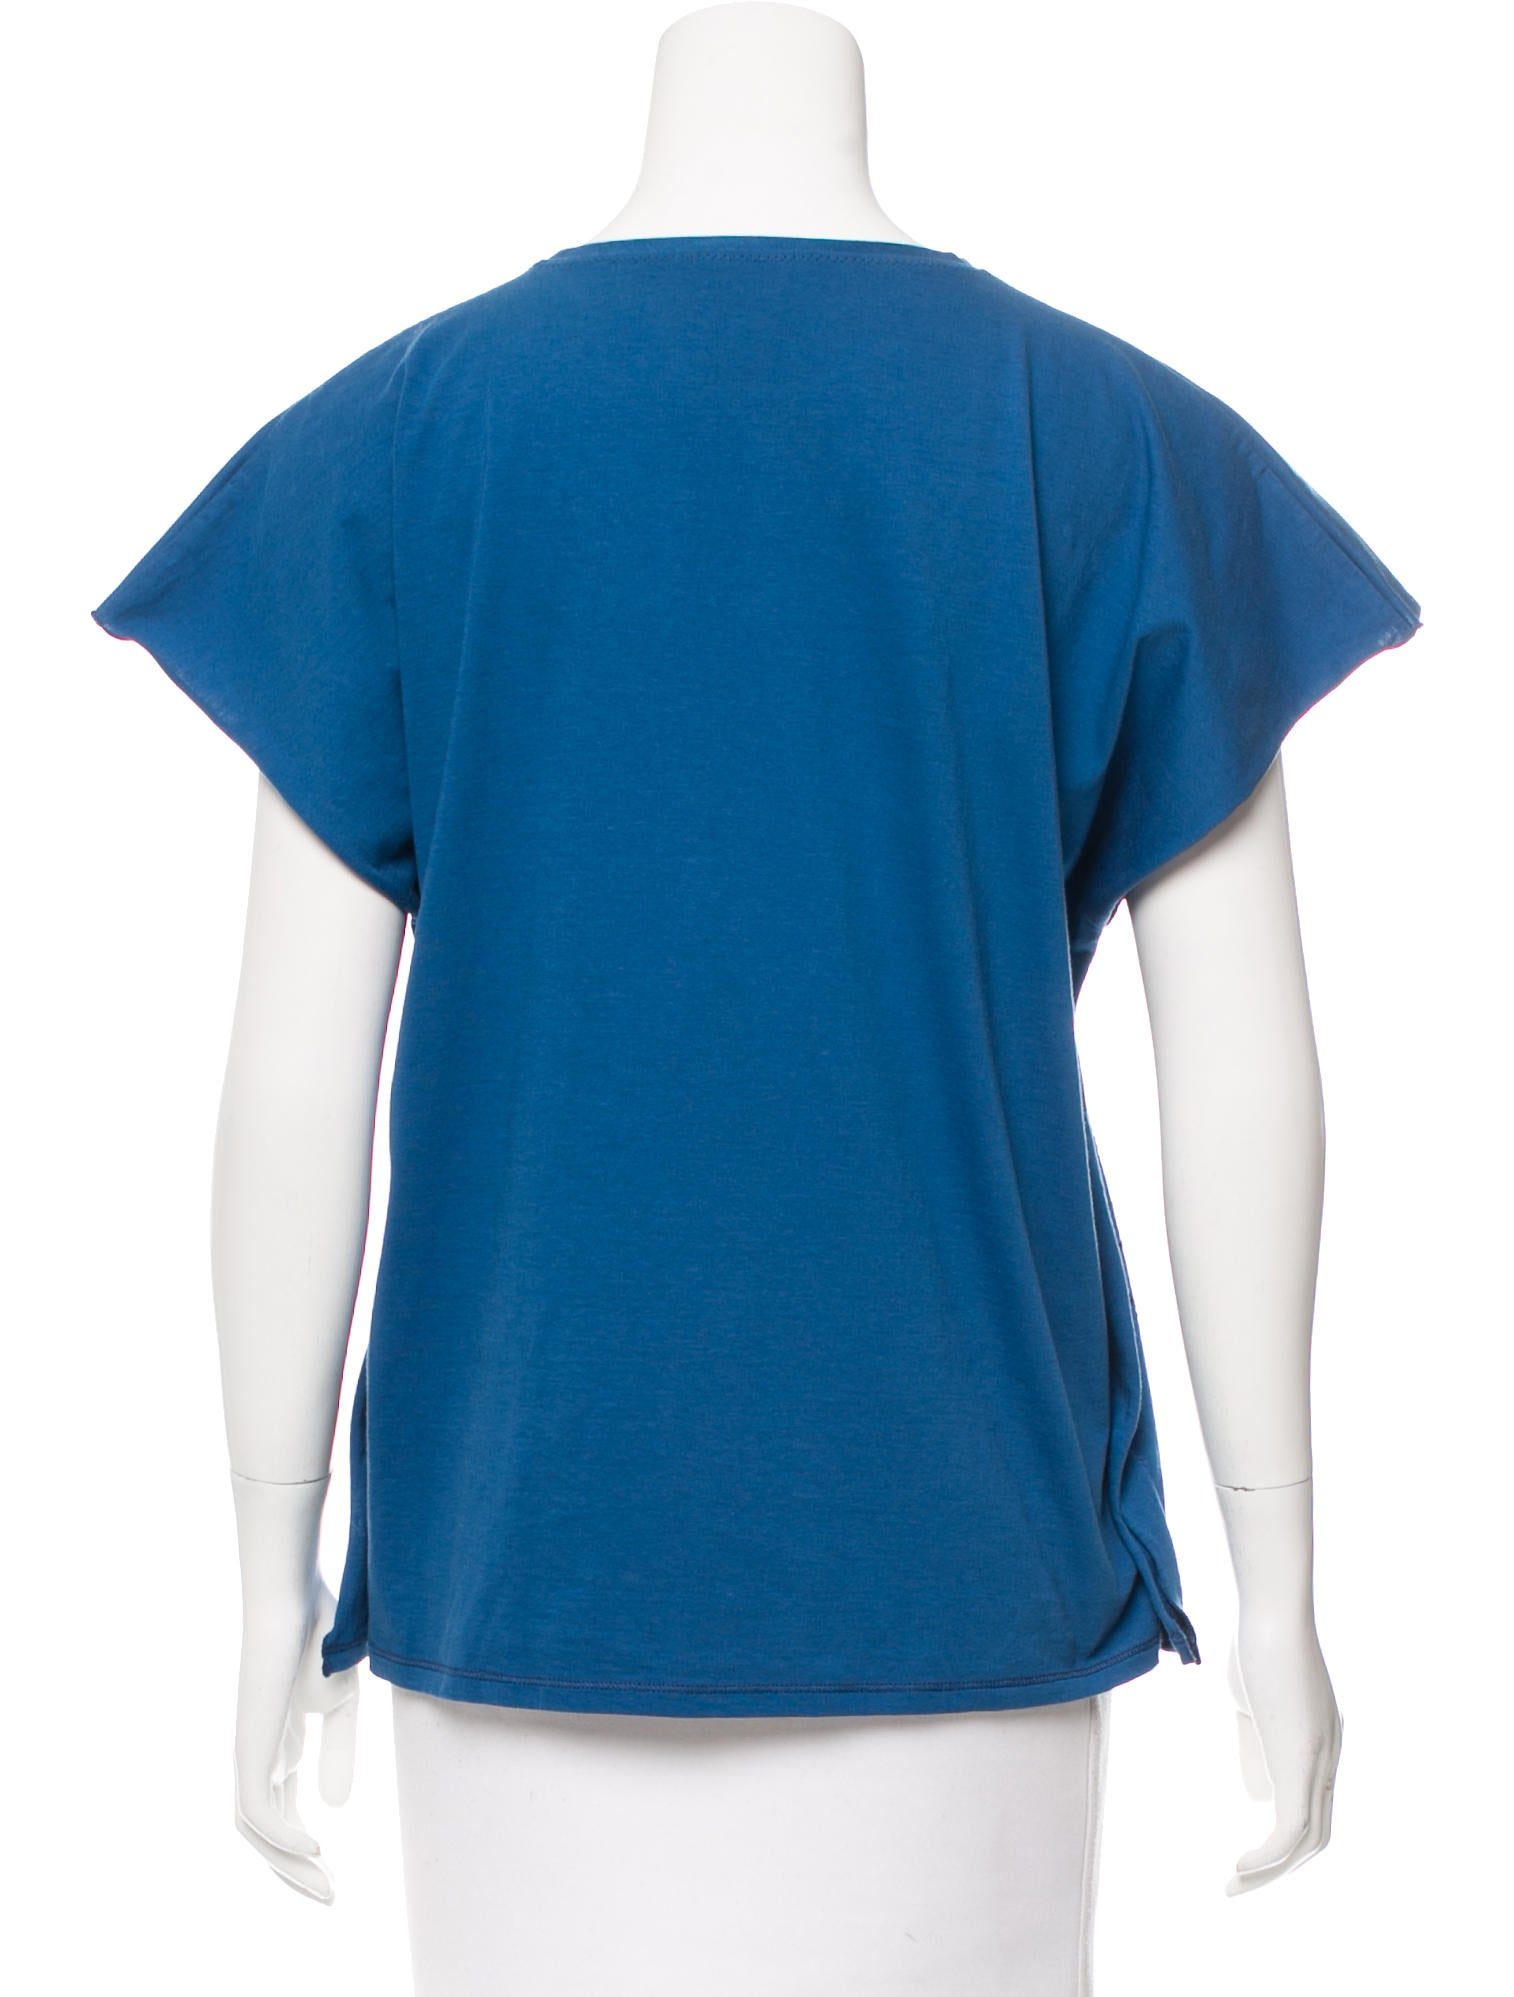 Bottega veneta cap sleeve printed t shirt clothing for Bottega veneta t shirt